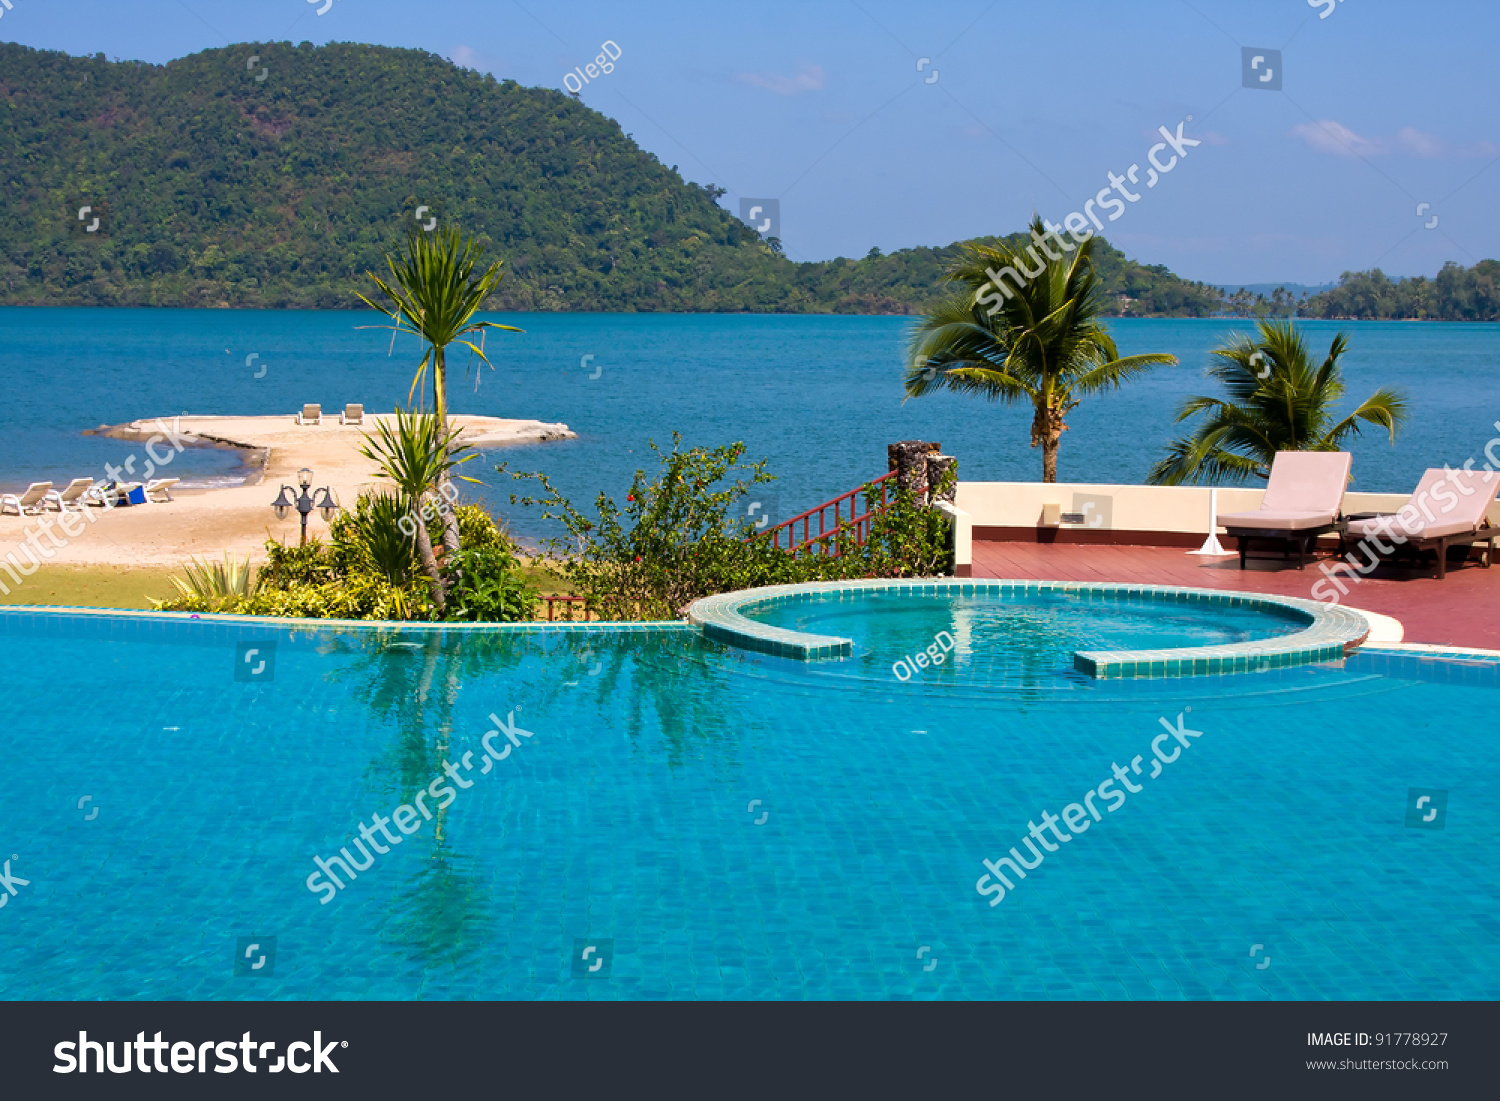 Swimming Pool Water Near The Sea Thailand Stock Photo 91778927 Shutterstock